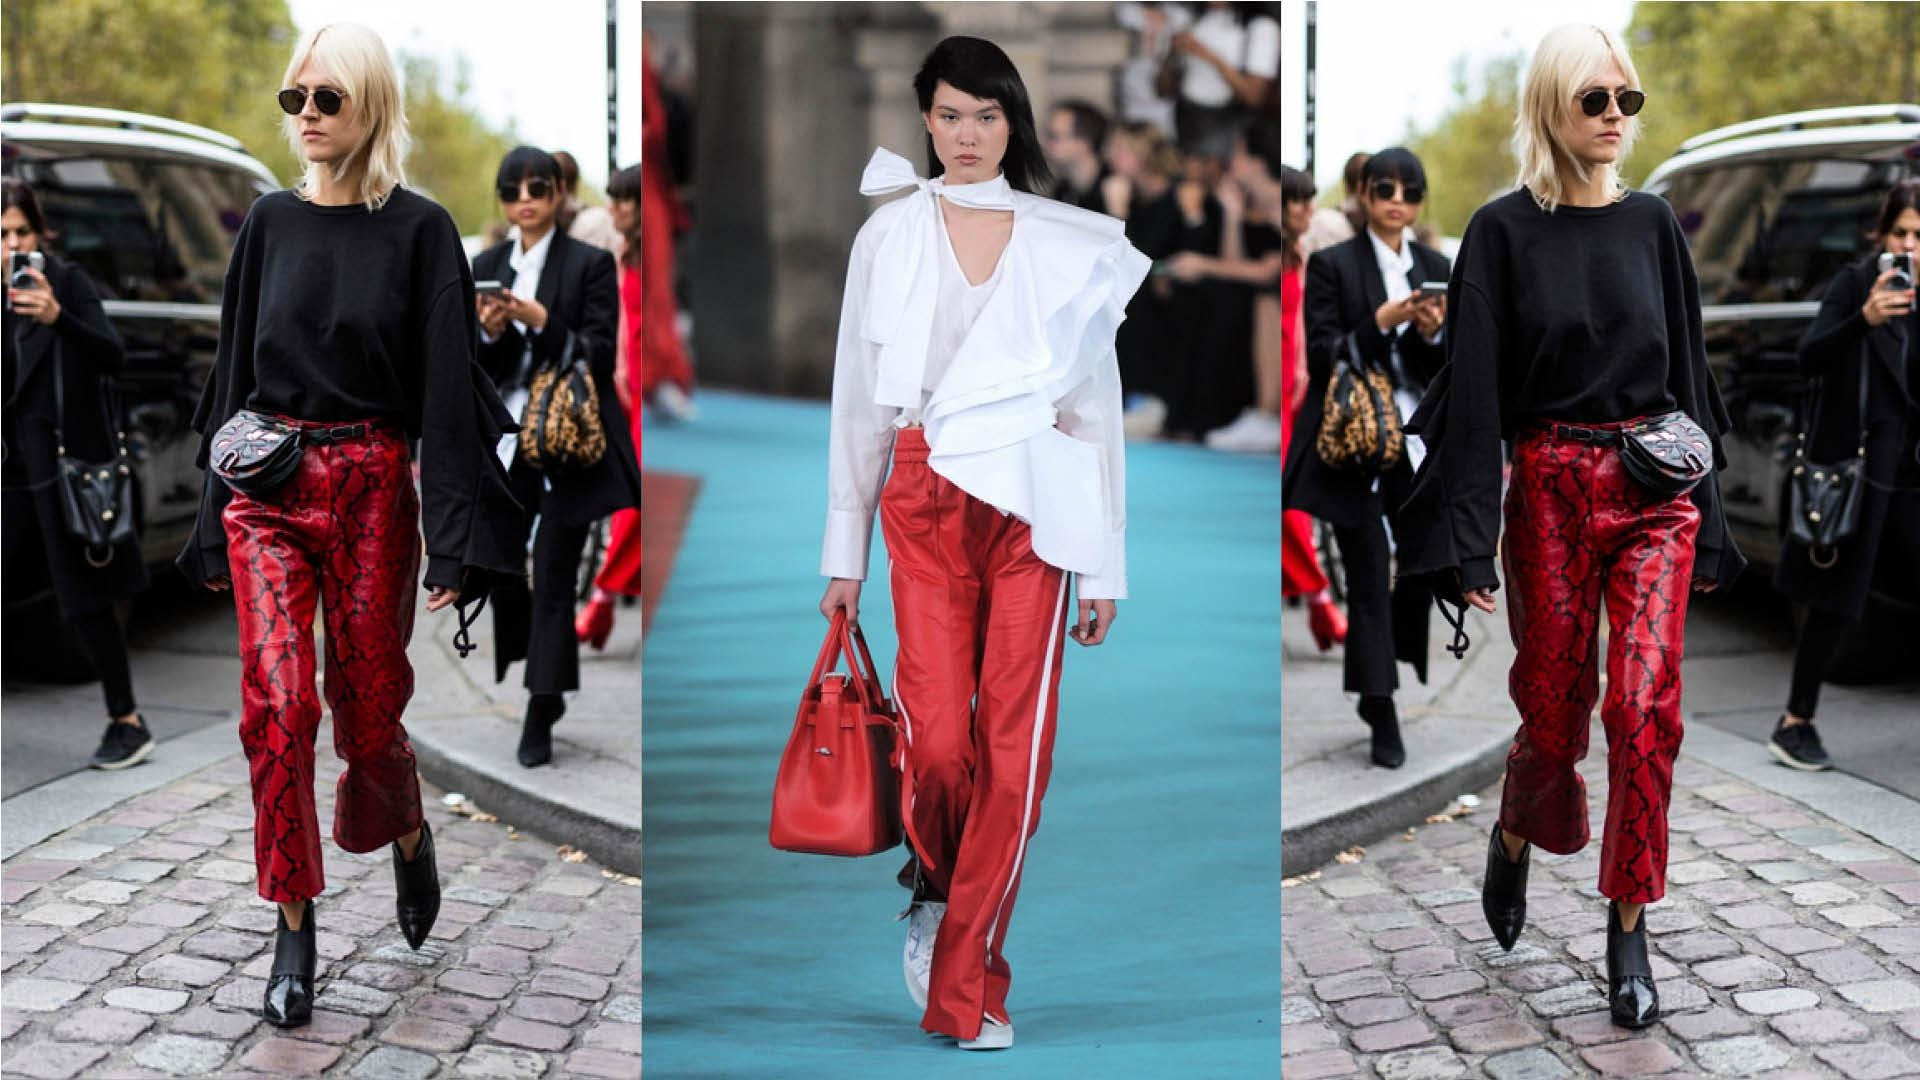 Summer Styling: Red & White All Over